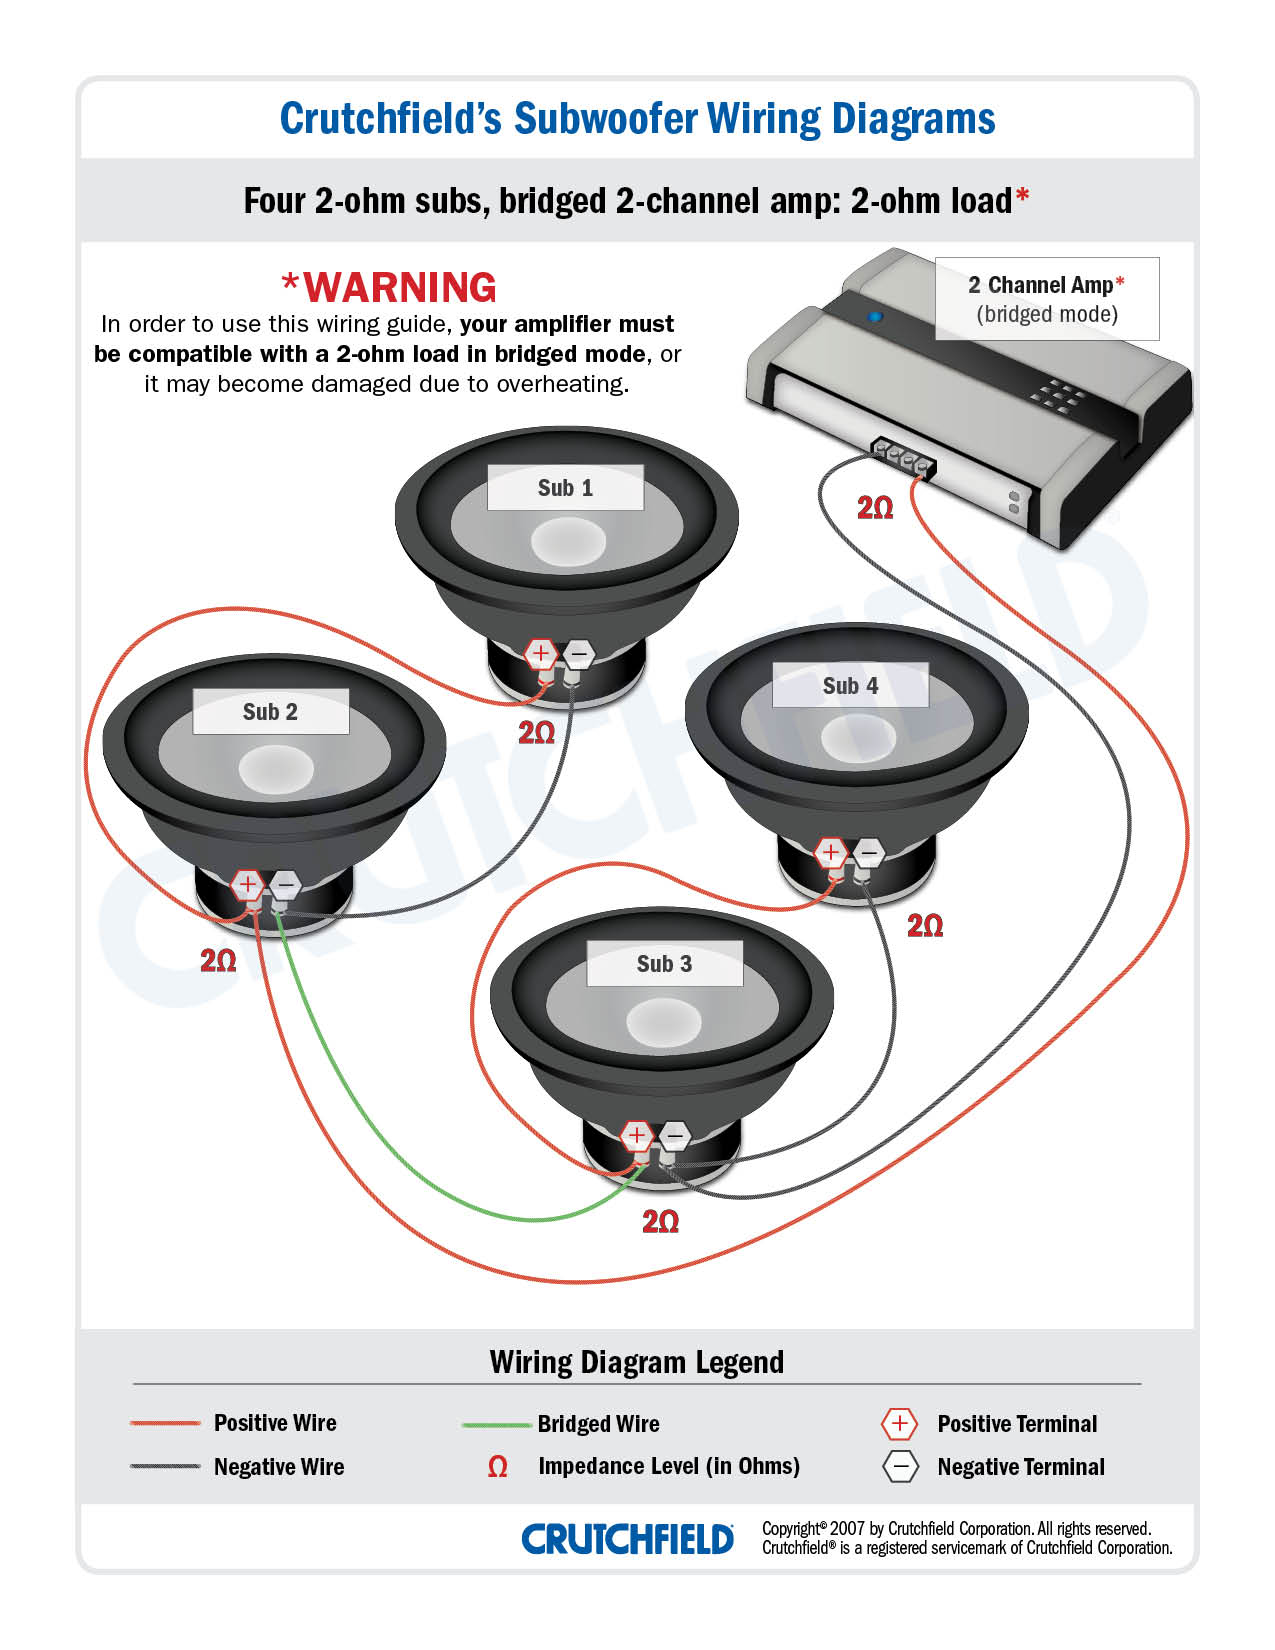 subwoofer wiring diagrams,Wiring diagram,Wiring Diagram For Subs